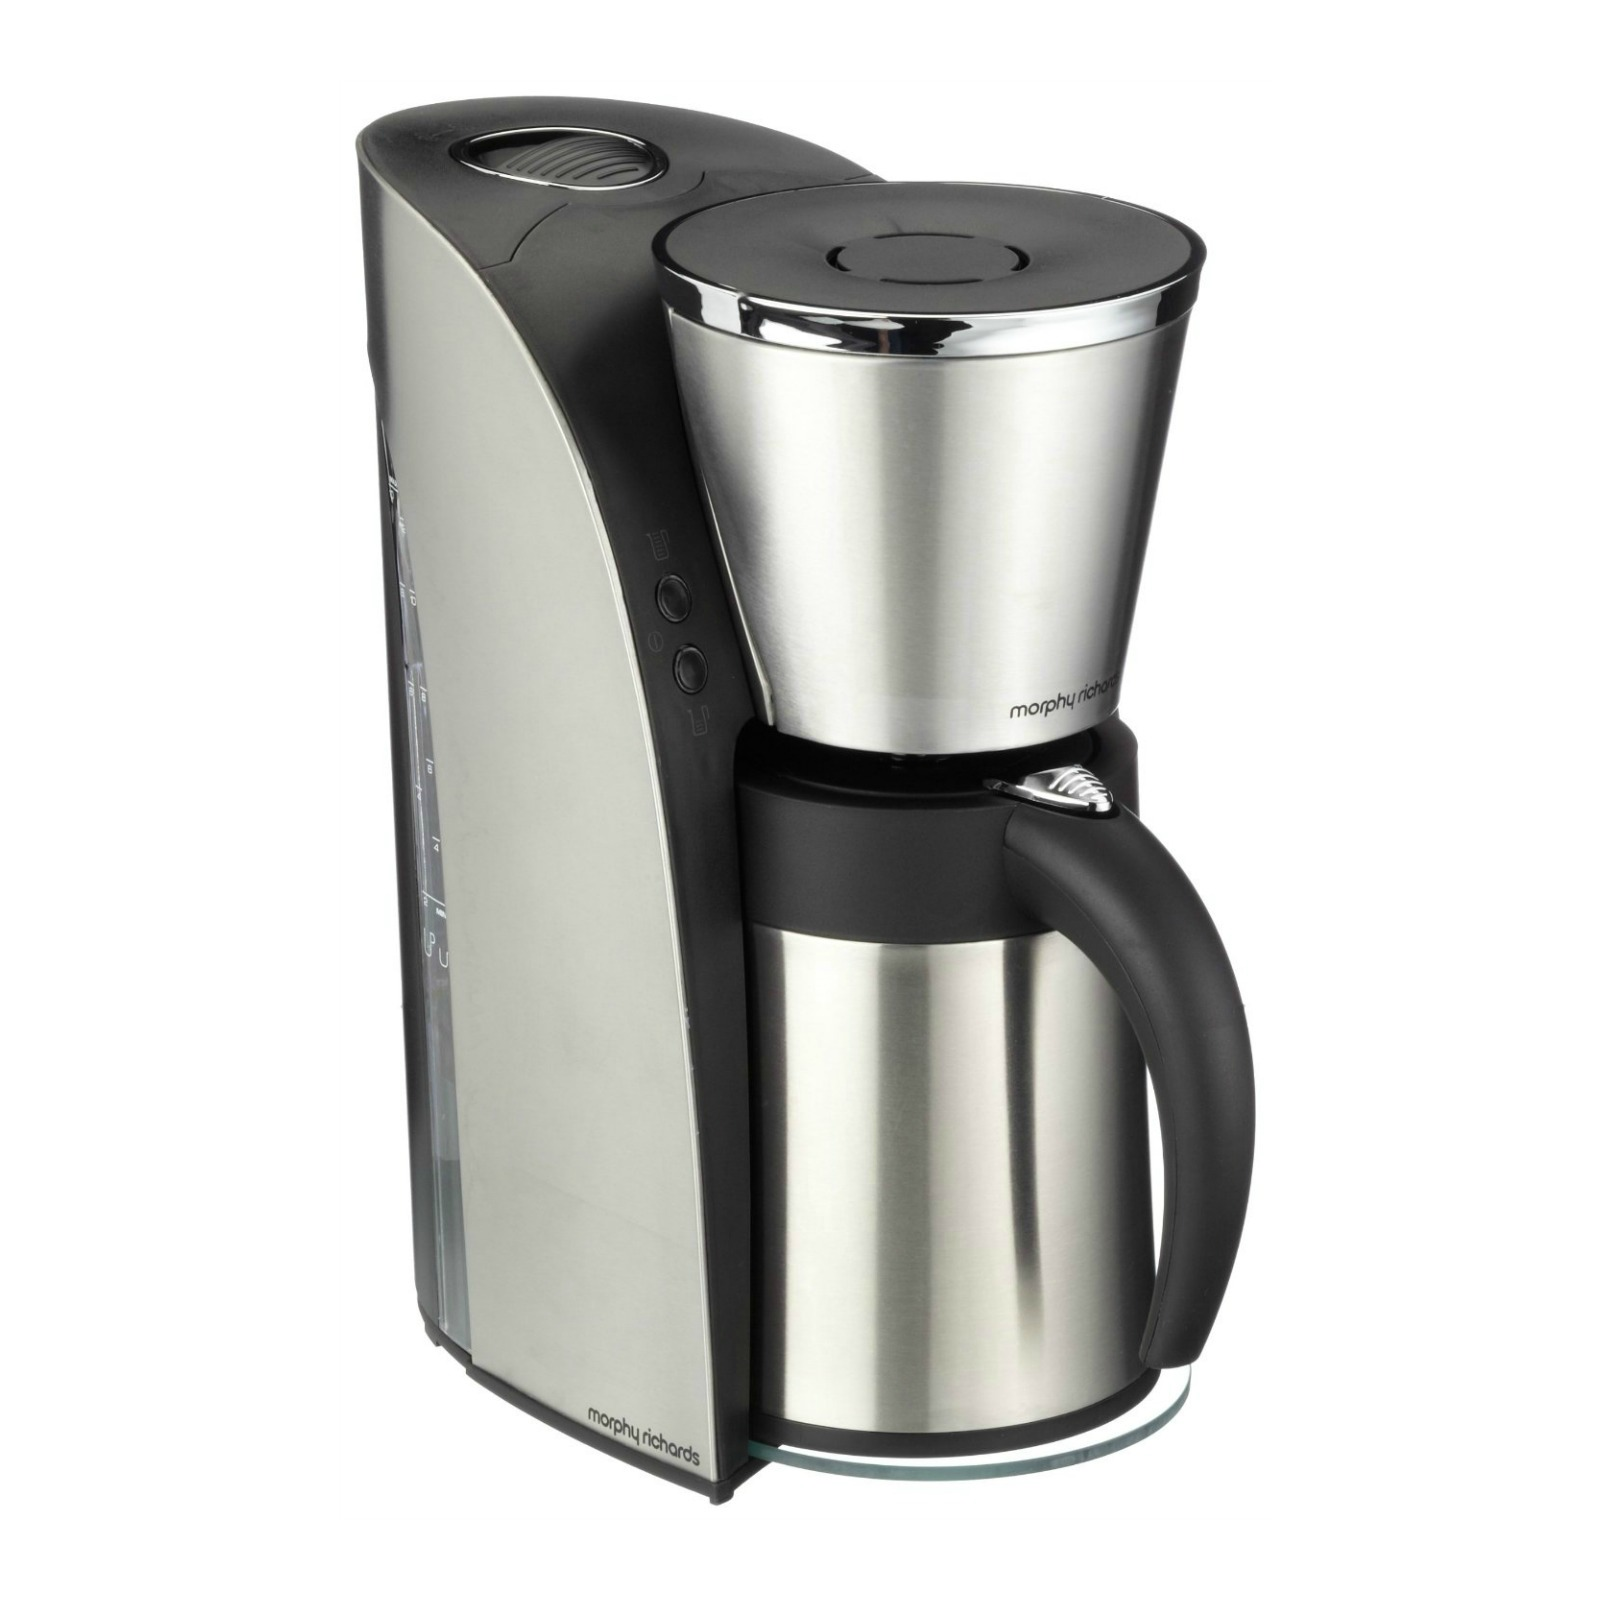 Morphy Richards Coffee Maker Cleaning : Morphy Richards 47110 ARC Filter Coffee Maker 10 Cup Silver/Black eBay